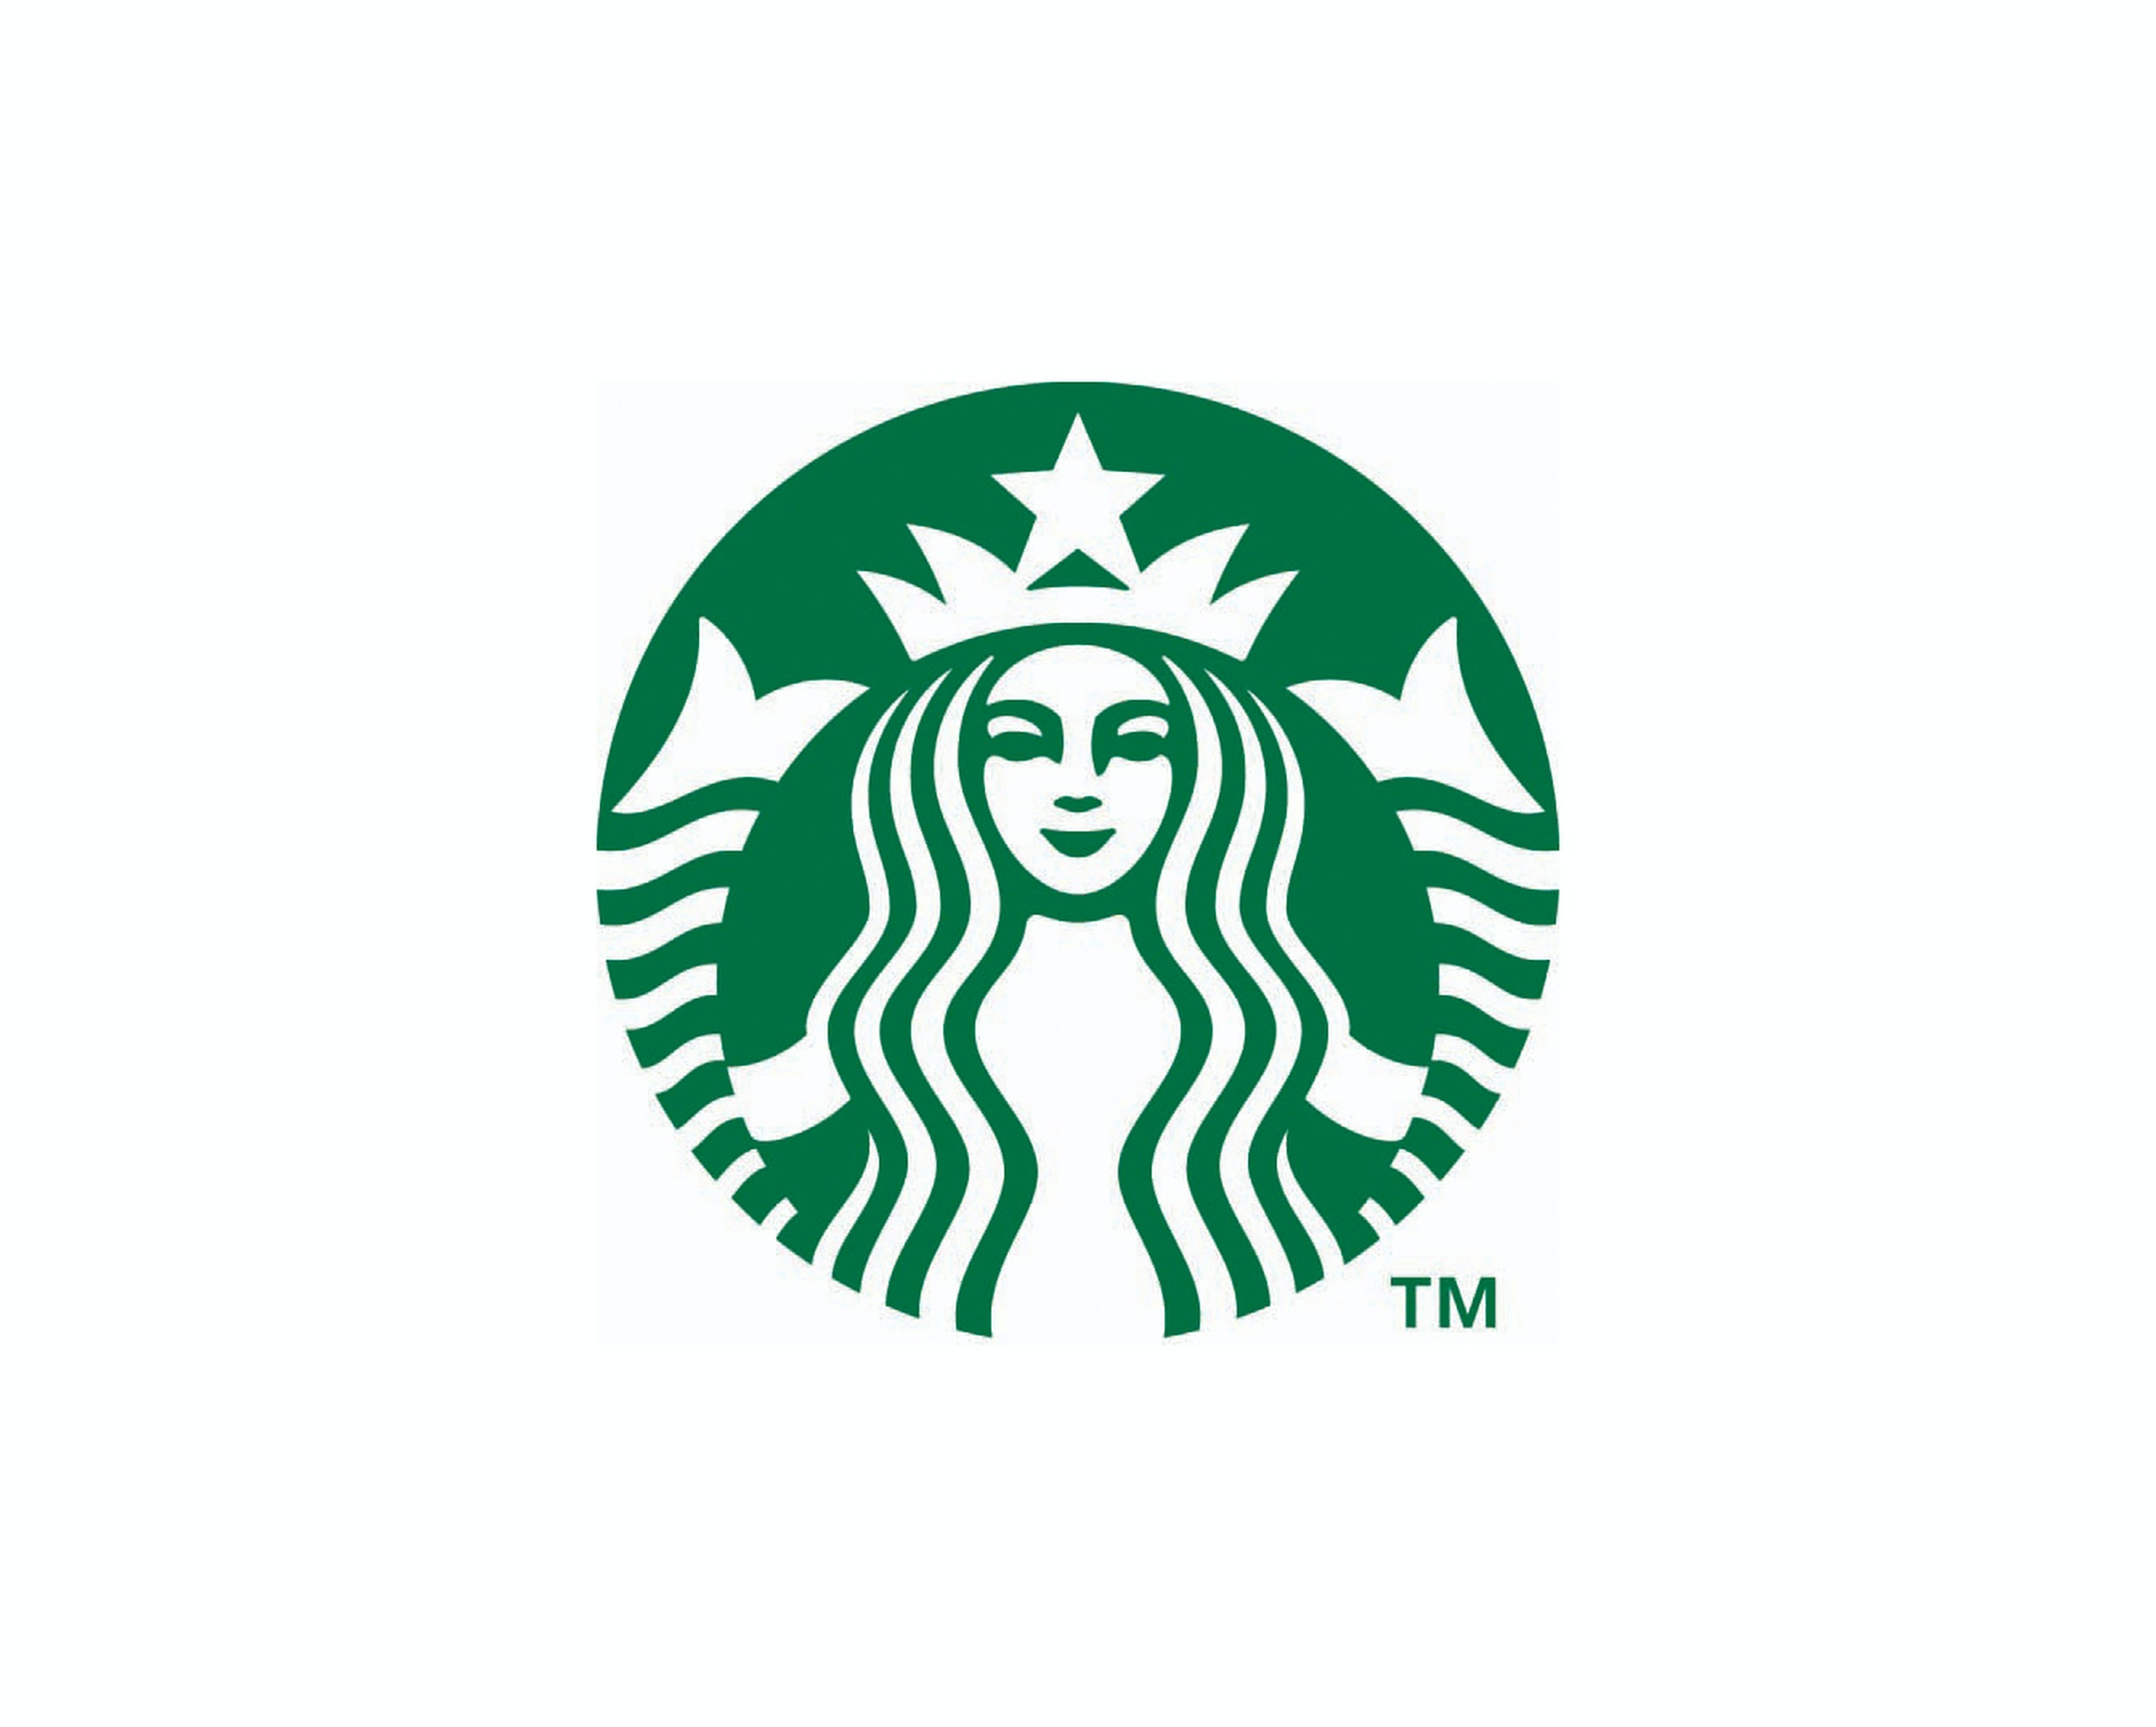 Starbucks mermaid costume ideas to mystically caffeinate your starbucks mermaid costume ideas to mystically caffeinate your halloween biocorpaavc Image collections